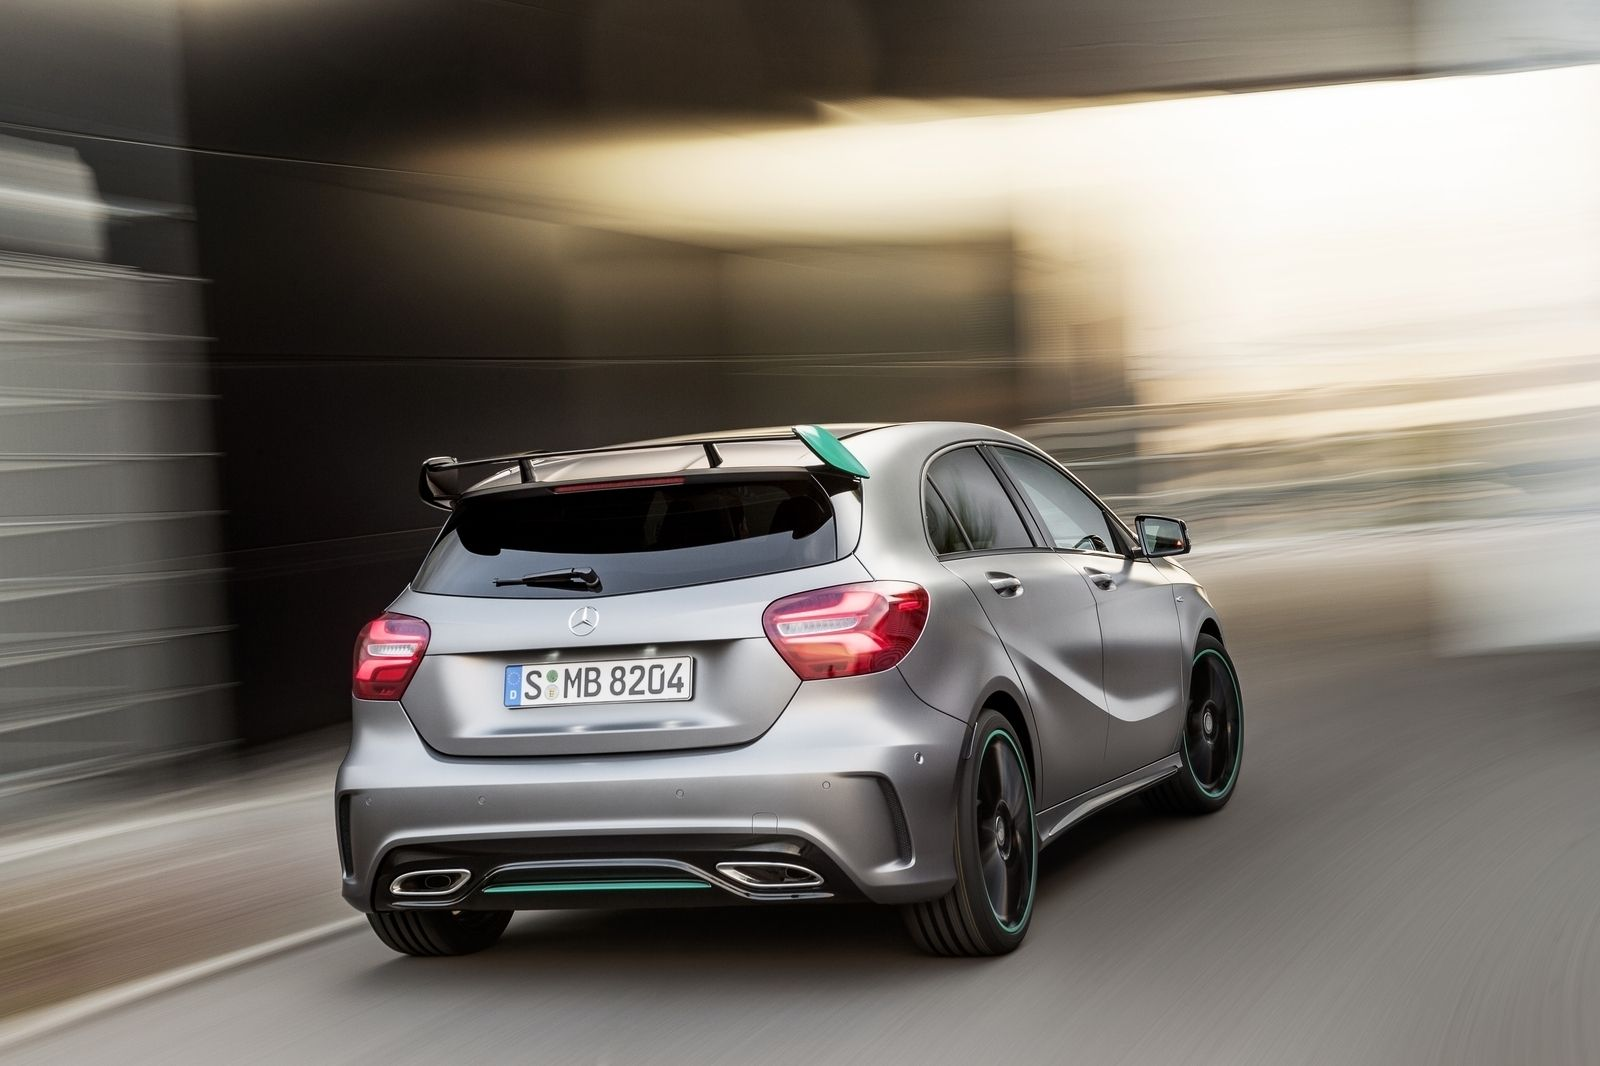 The Motorsport Edition of the new MercedesBenz A 250 Sport